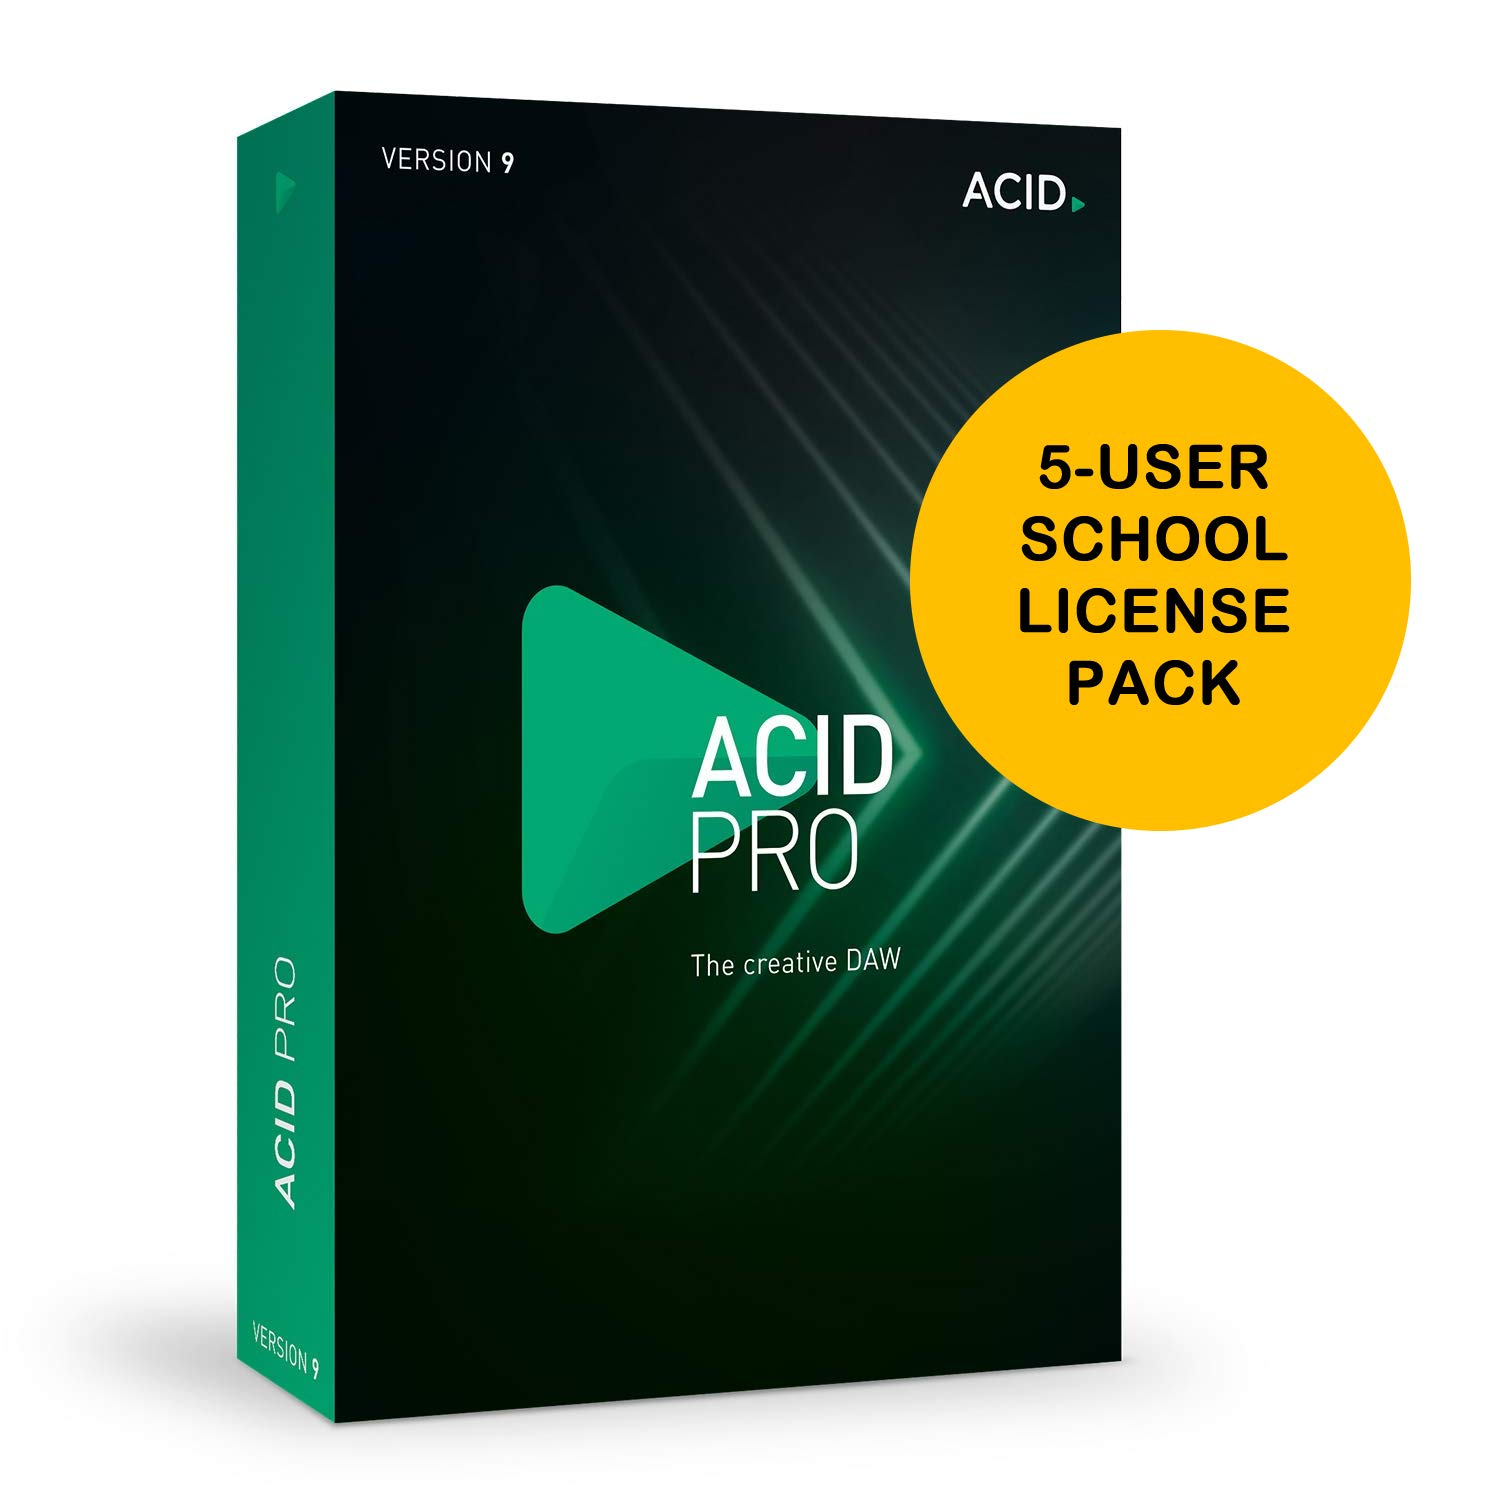 MAGIX Acid Pro 9 5-User School License [Download Card] - Loop-Based Music Production, Powerful Multitrack Recording, Creative DAW by Magix-Genesis